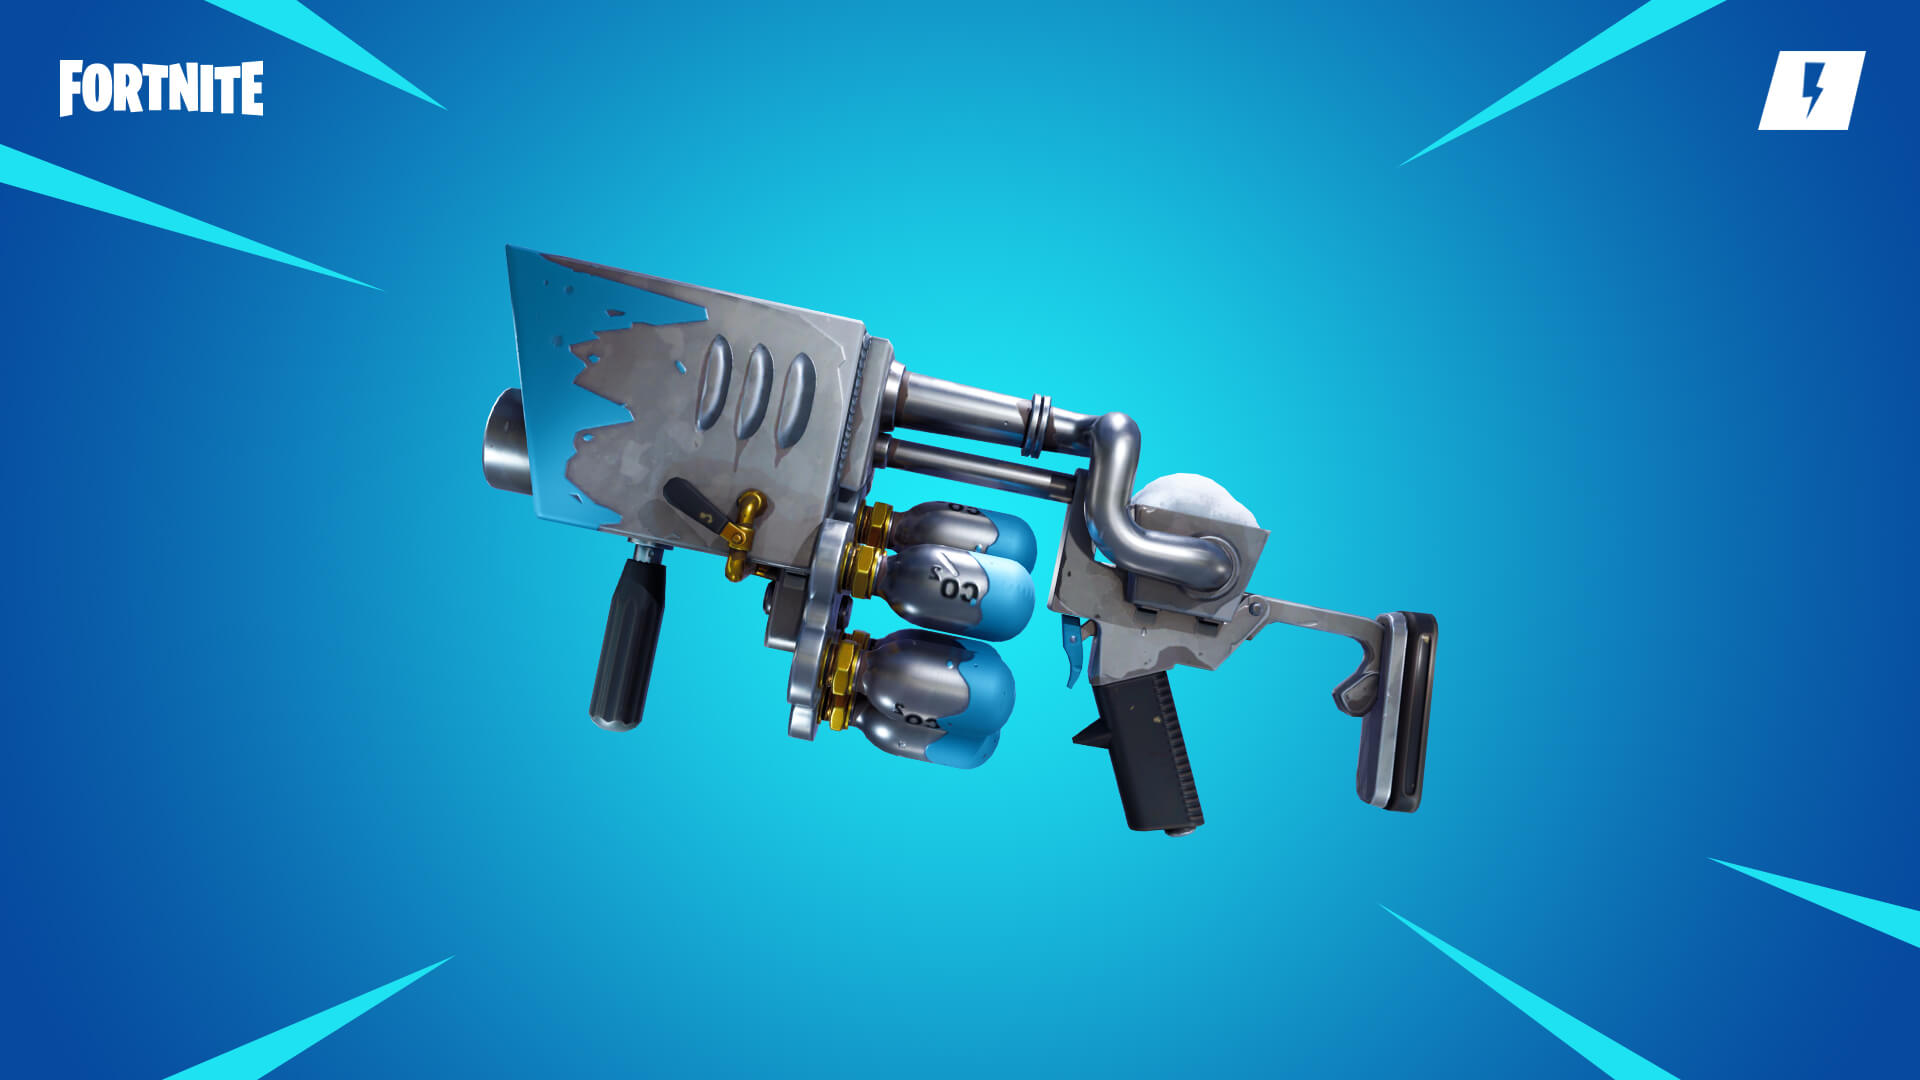 Fortnite Save the World Snowball Launcher Weapon